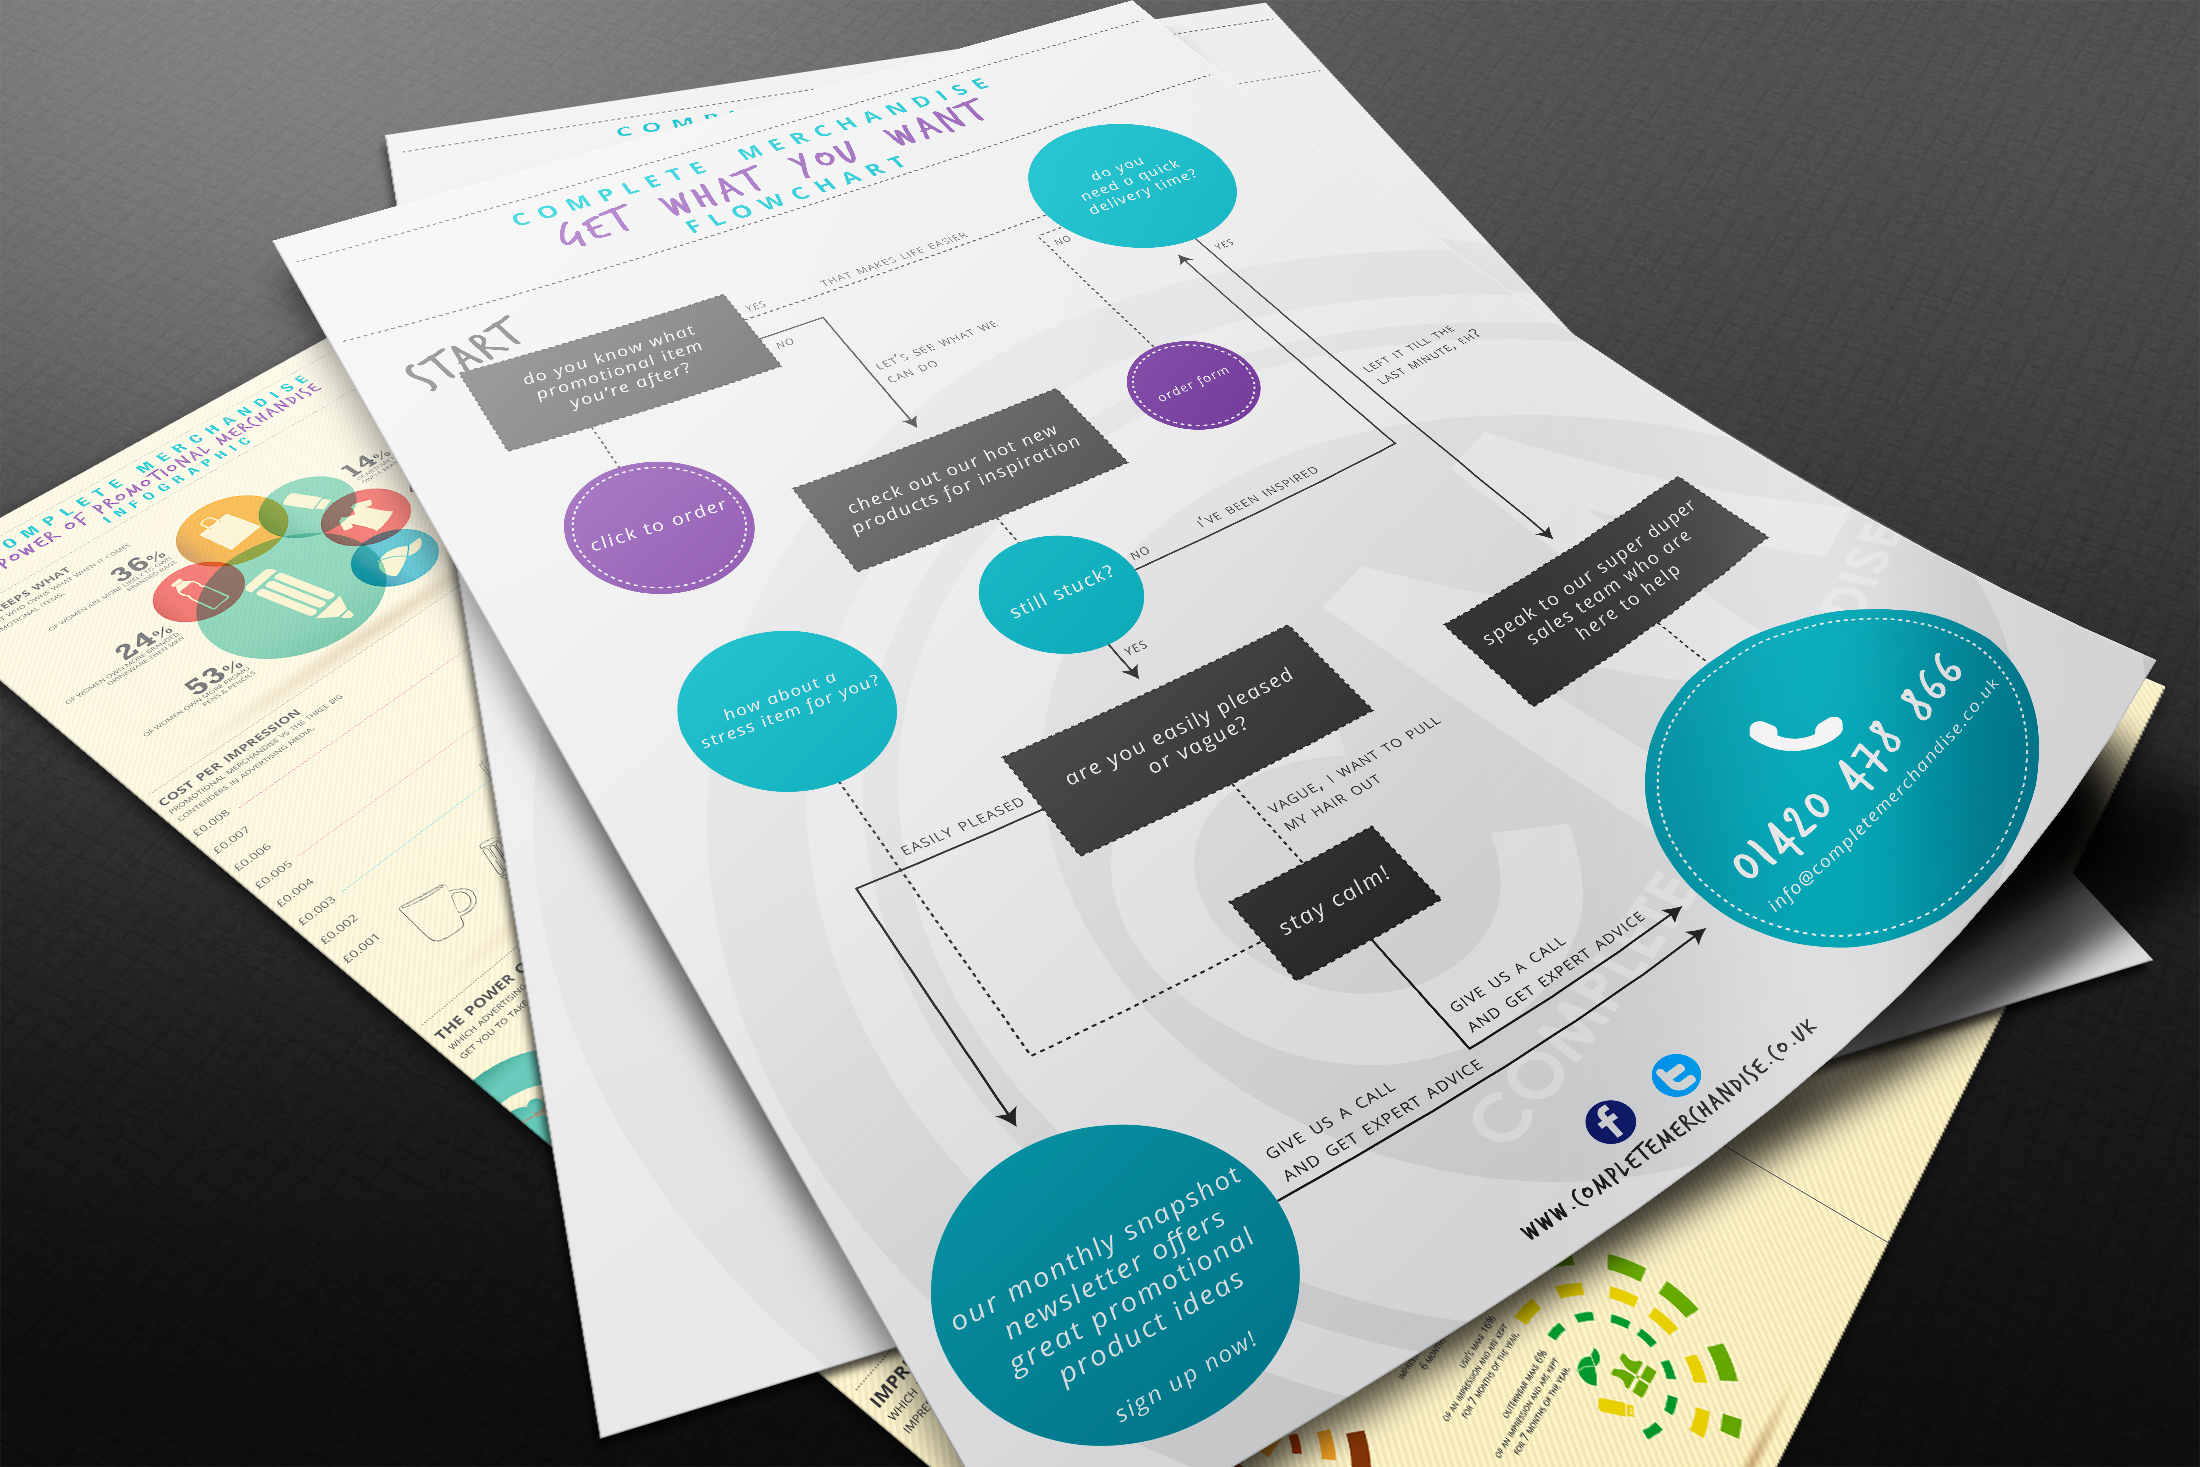 Flowchart Guide to Buying Promotional Merchandise